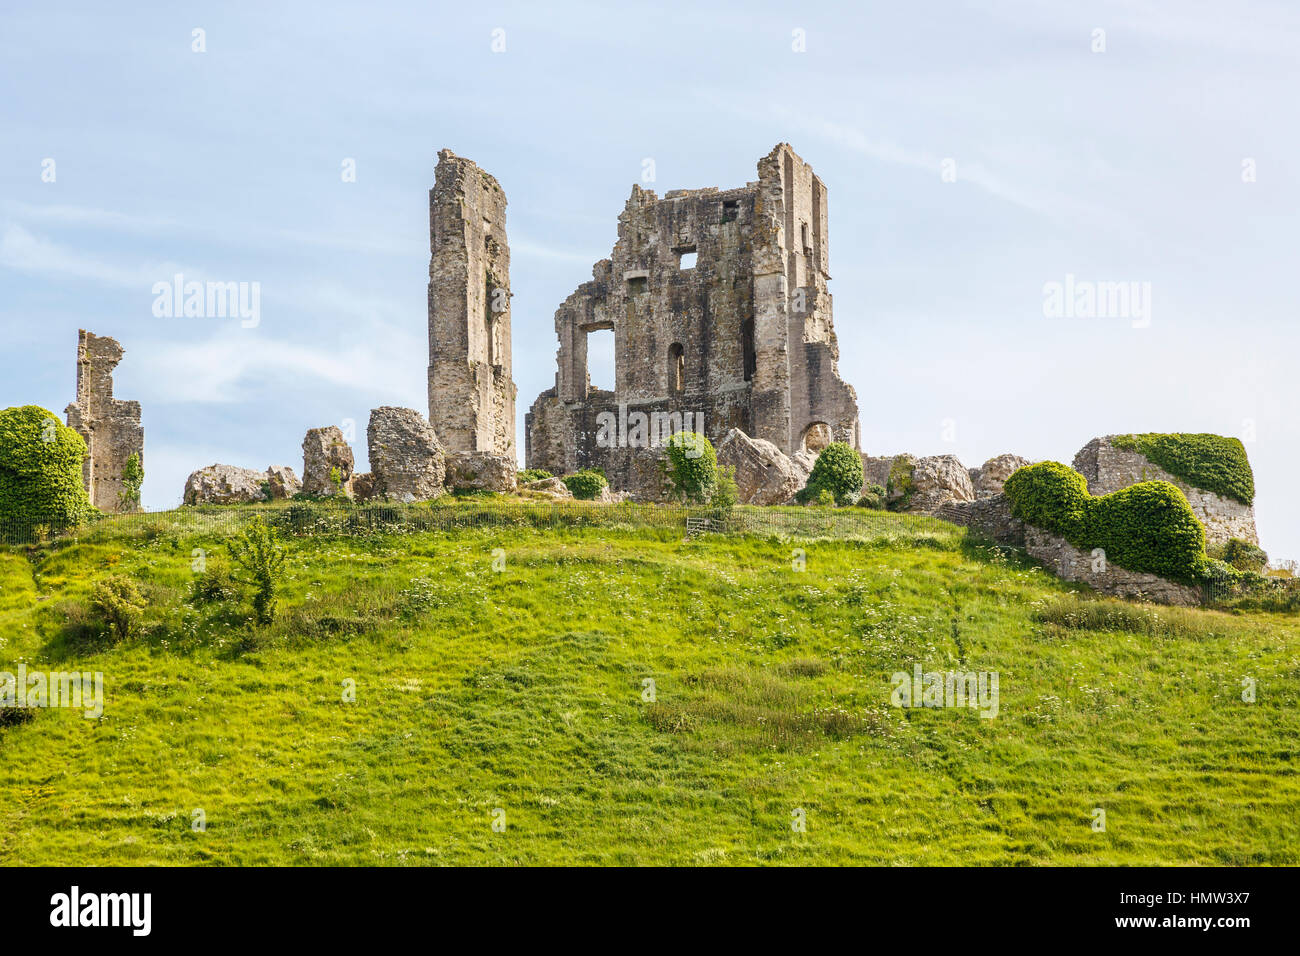 View of the the hilltop ruins of Corfe Castle, survivor of the English Civil War, in Corfe, Dorset, south-west England - Stock Image